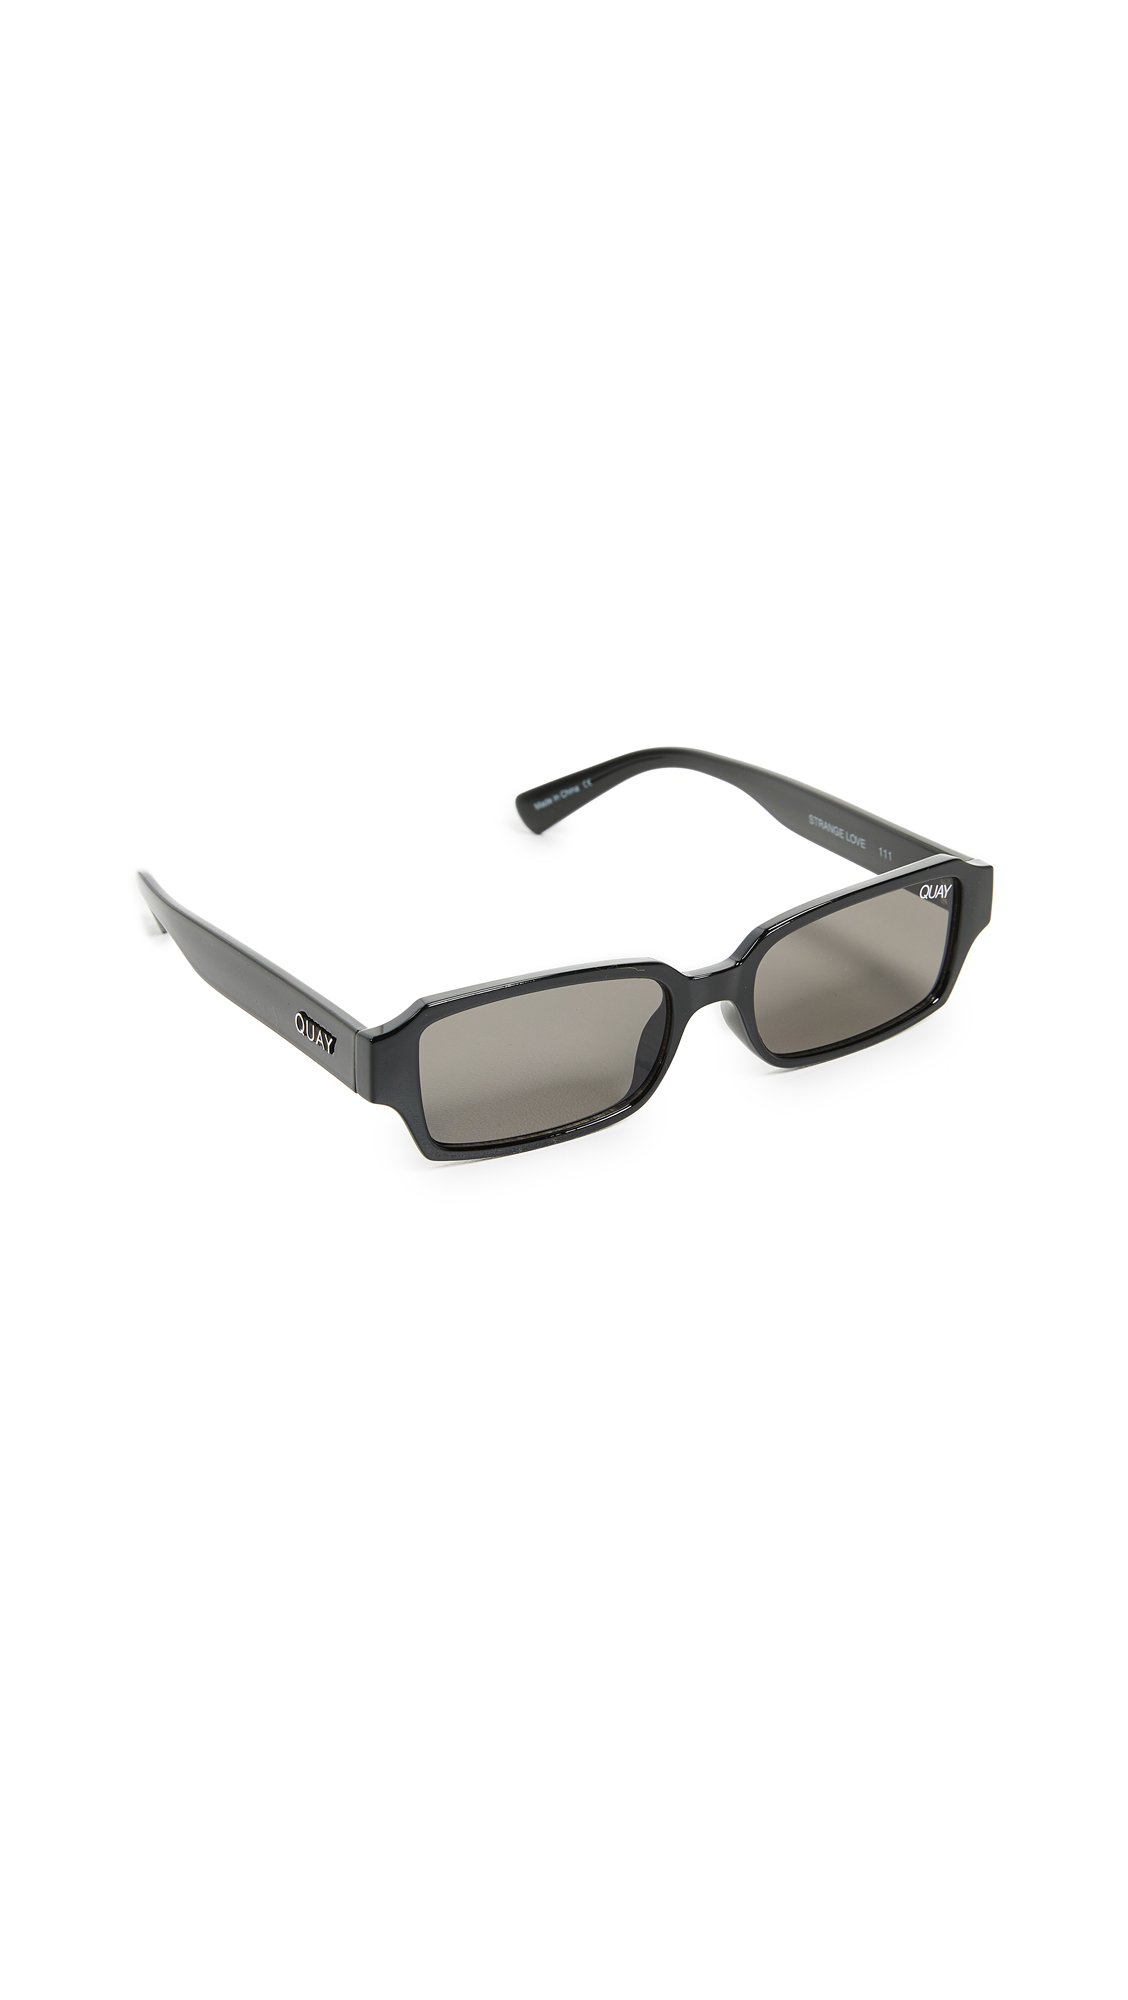 Quay Strange Love Sunglasses In Black/Black